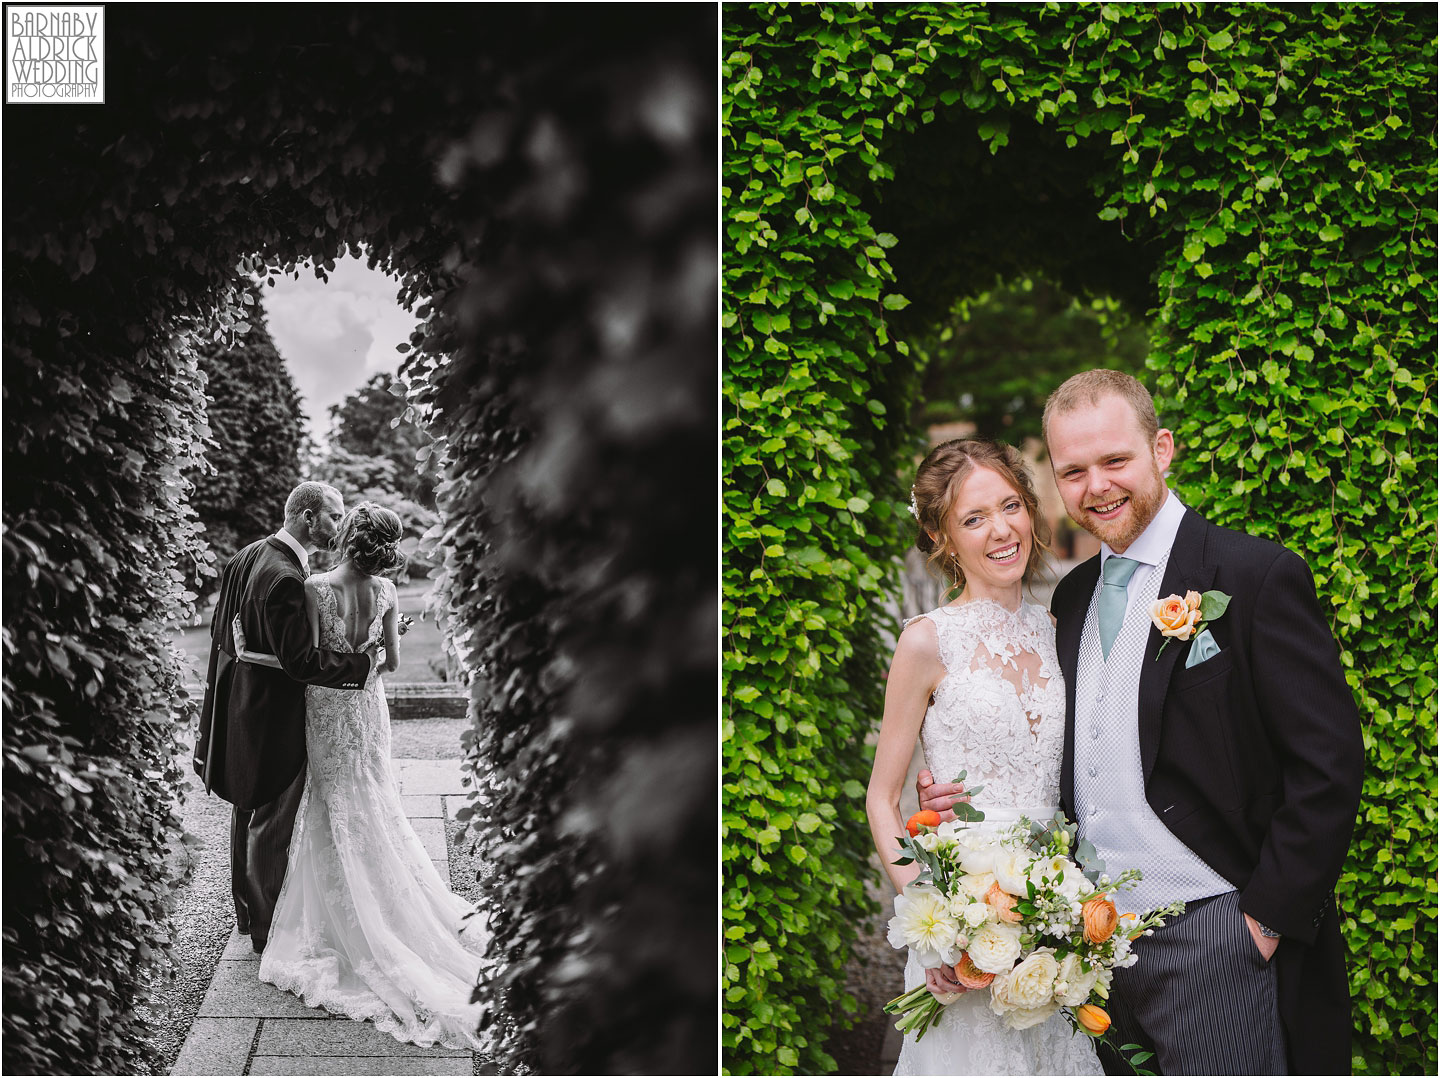 Bride and groom at Goldsborough Hall, Goldsborough Hall Wedding Photography, Yorkshire Wedding, Yorkshire Wedding Photographer, Knaresborough Wedding, Harrogate wedding venue, Yorkshire Stately House Wedding